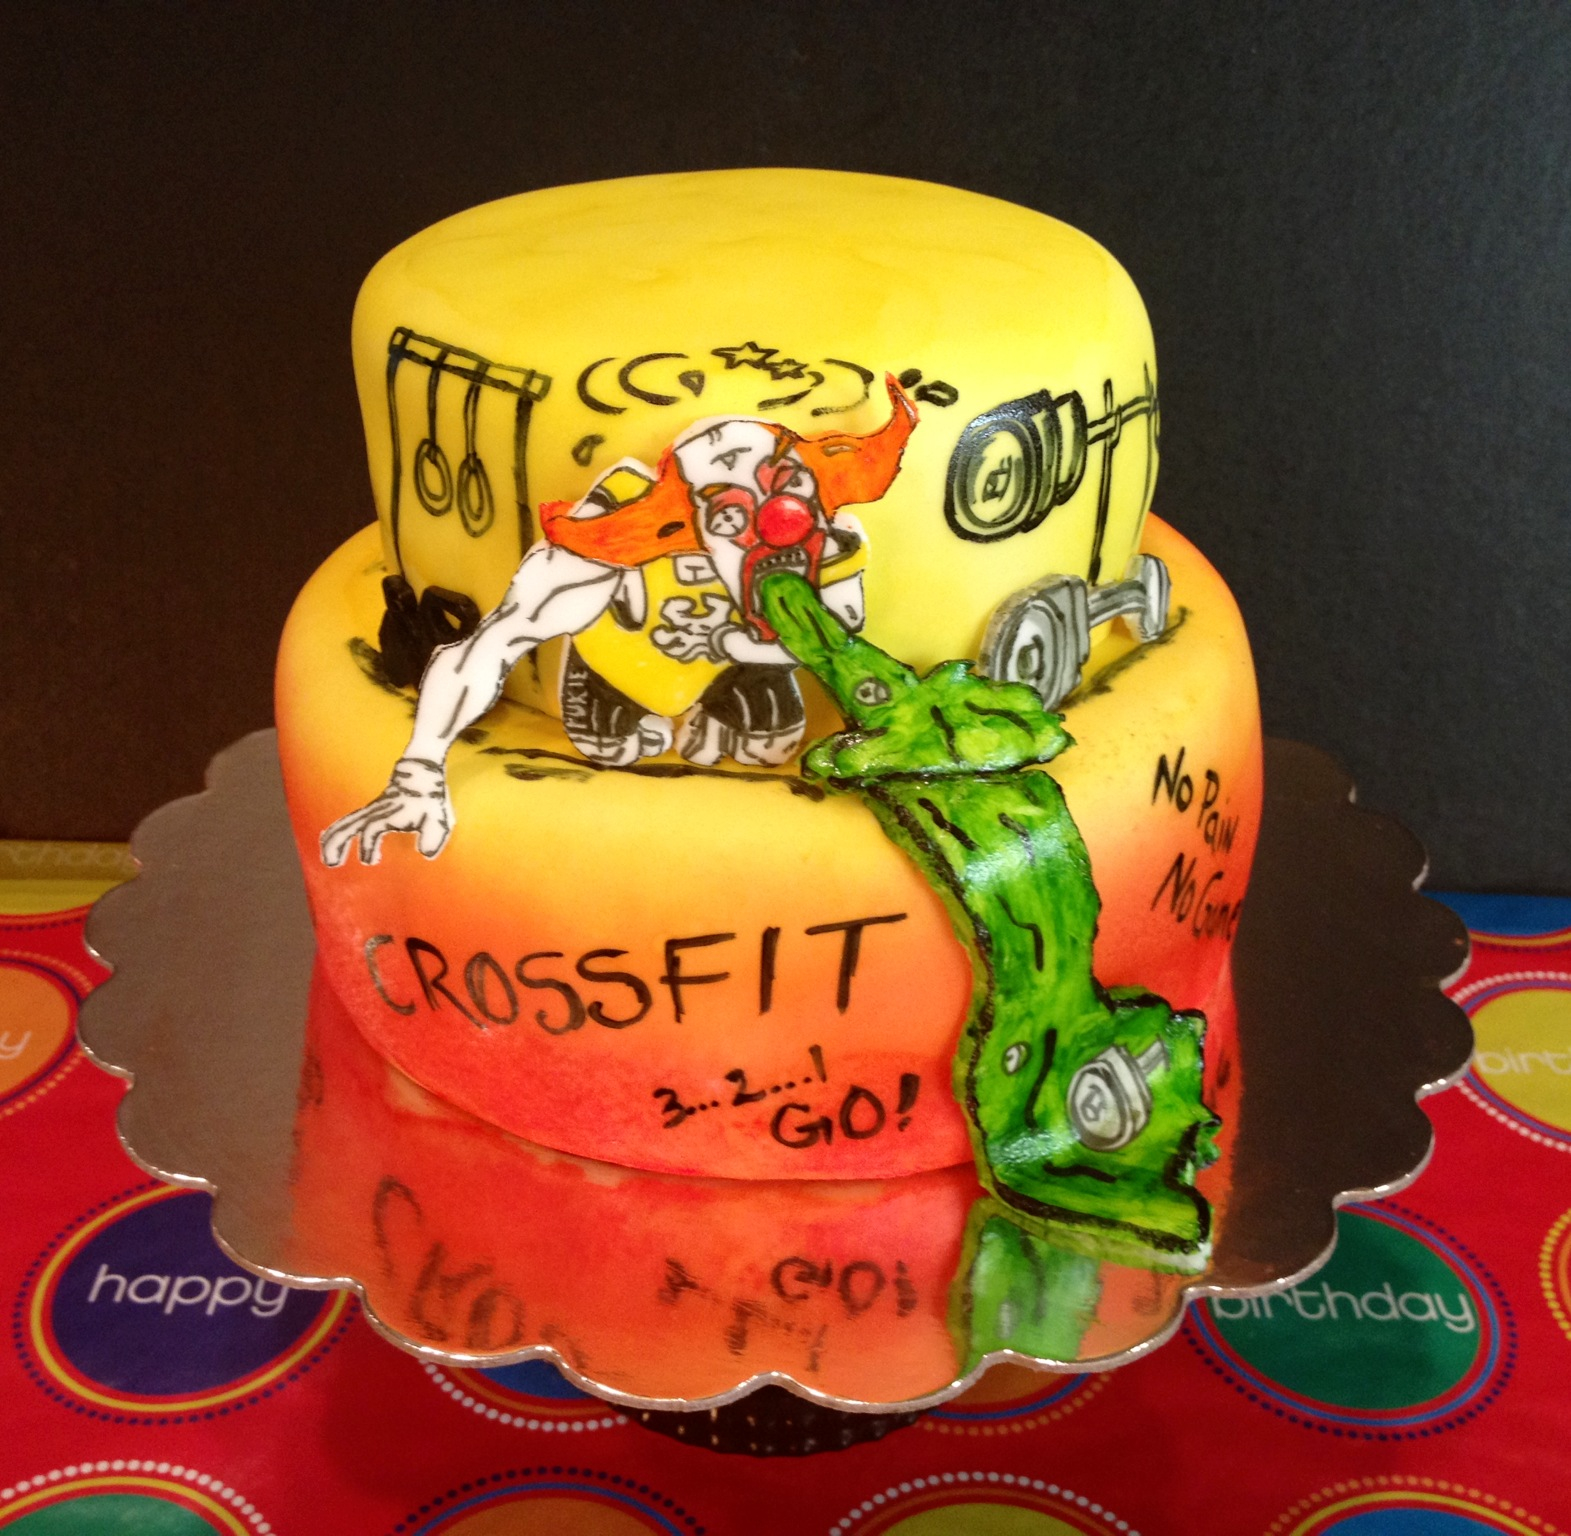 CrossFit Themed Birthday Cake